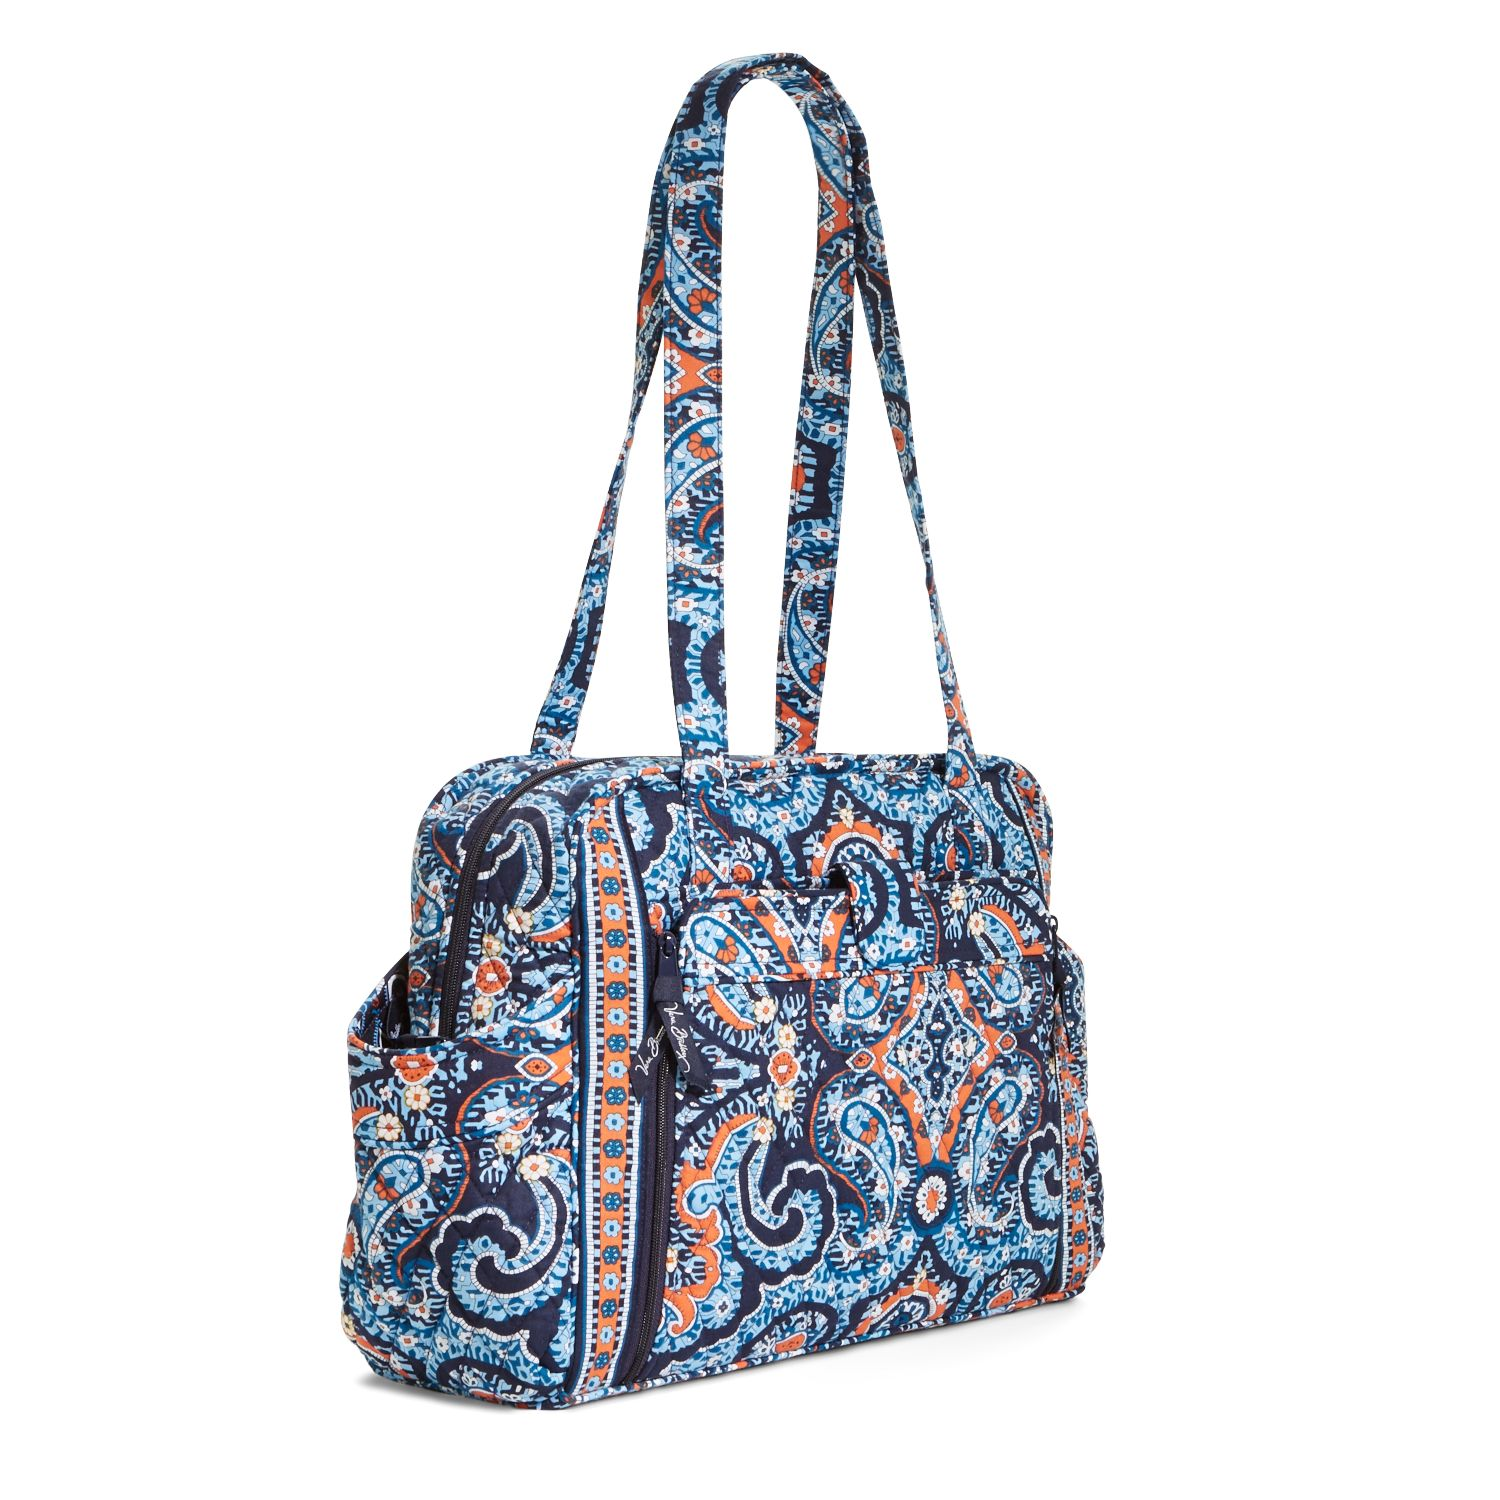 Vera Bradley Make A Change Baby Bag Ebay